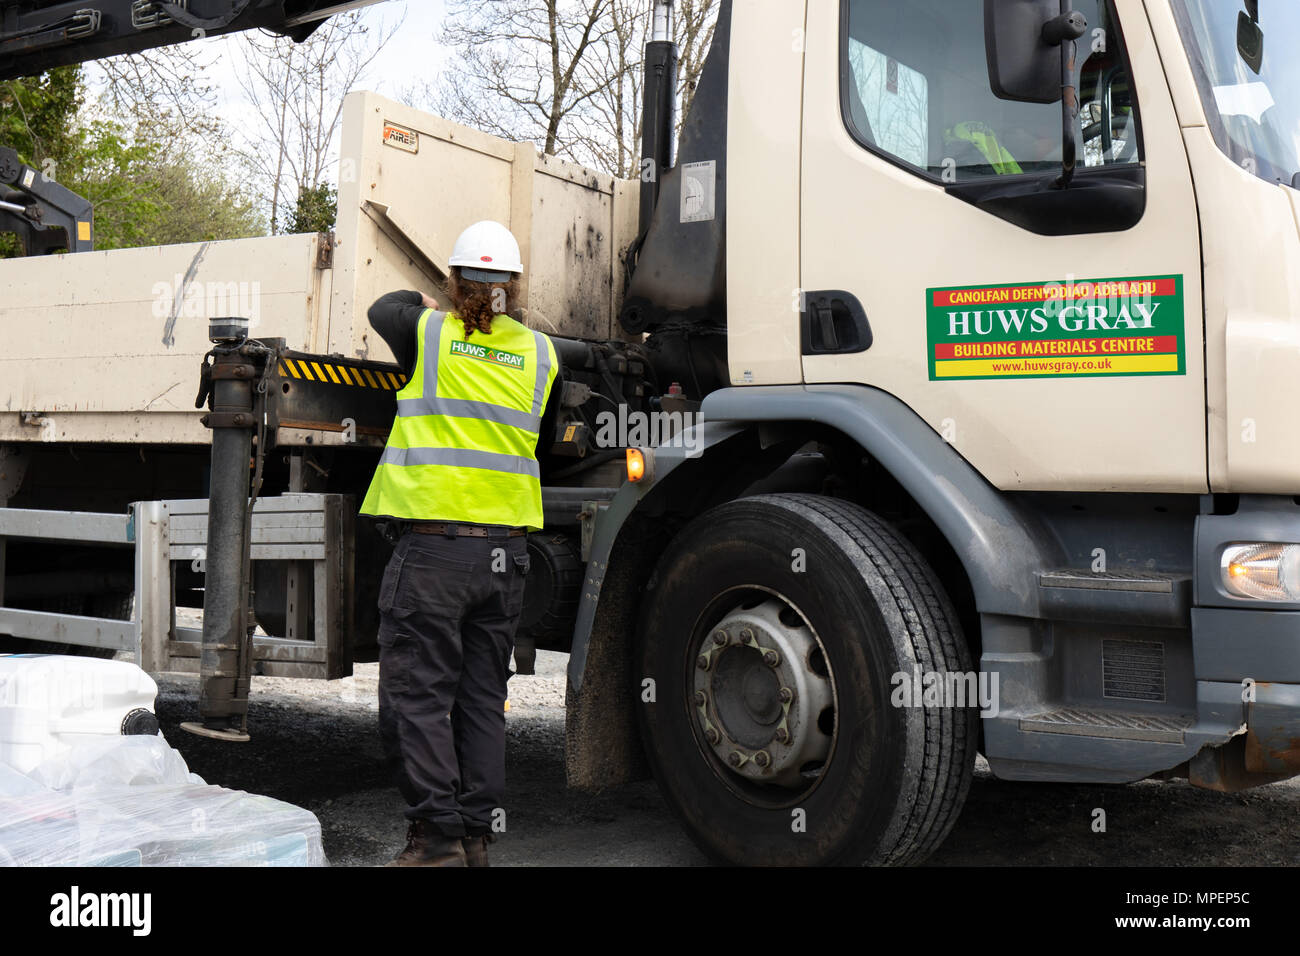 A Huws Gray builders merchant lorry delivering building products Stock Photo